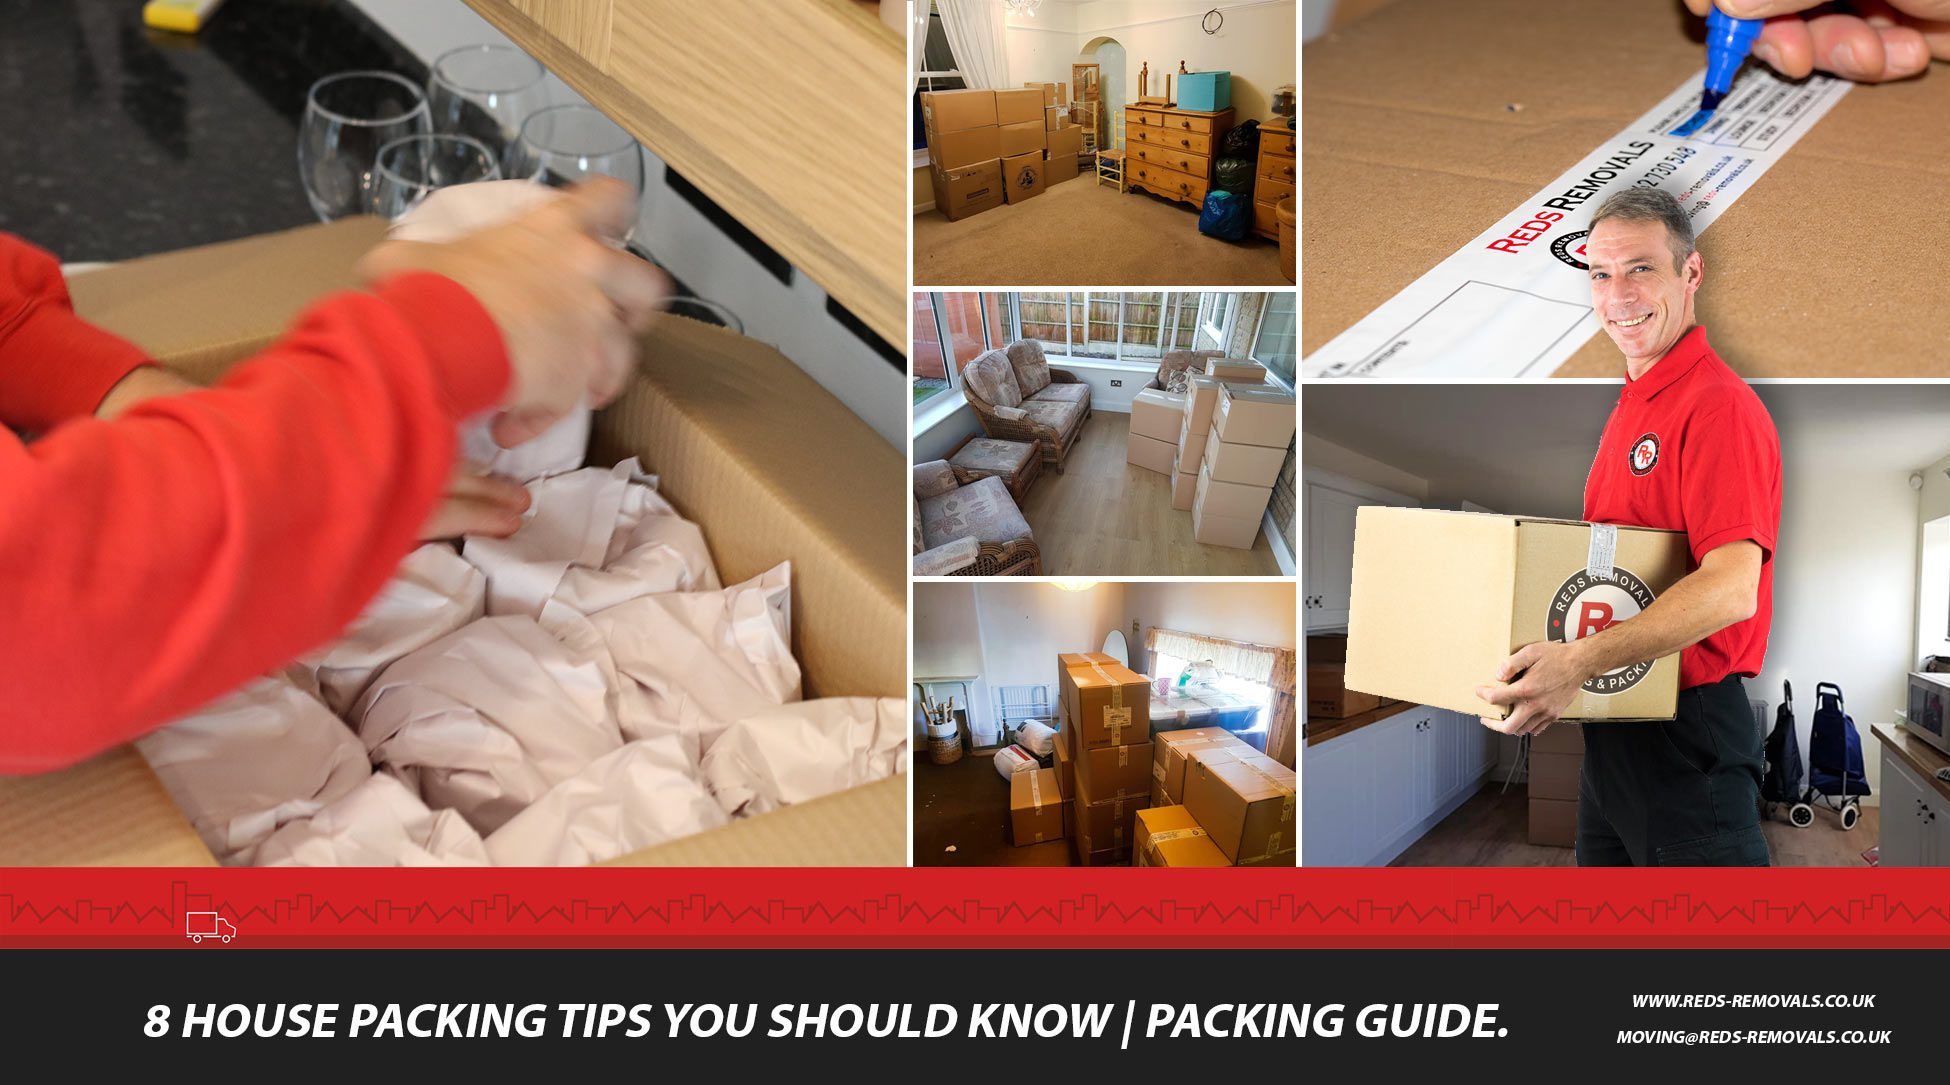 Ultimate packing guide | 8 packing tips to make your house move easy | Reds Removals